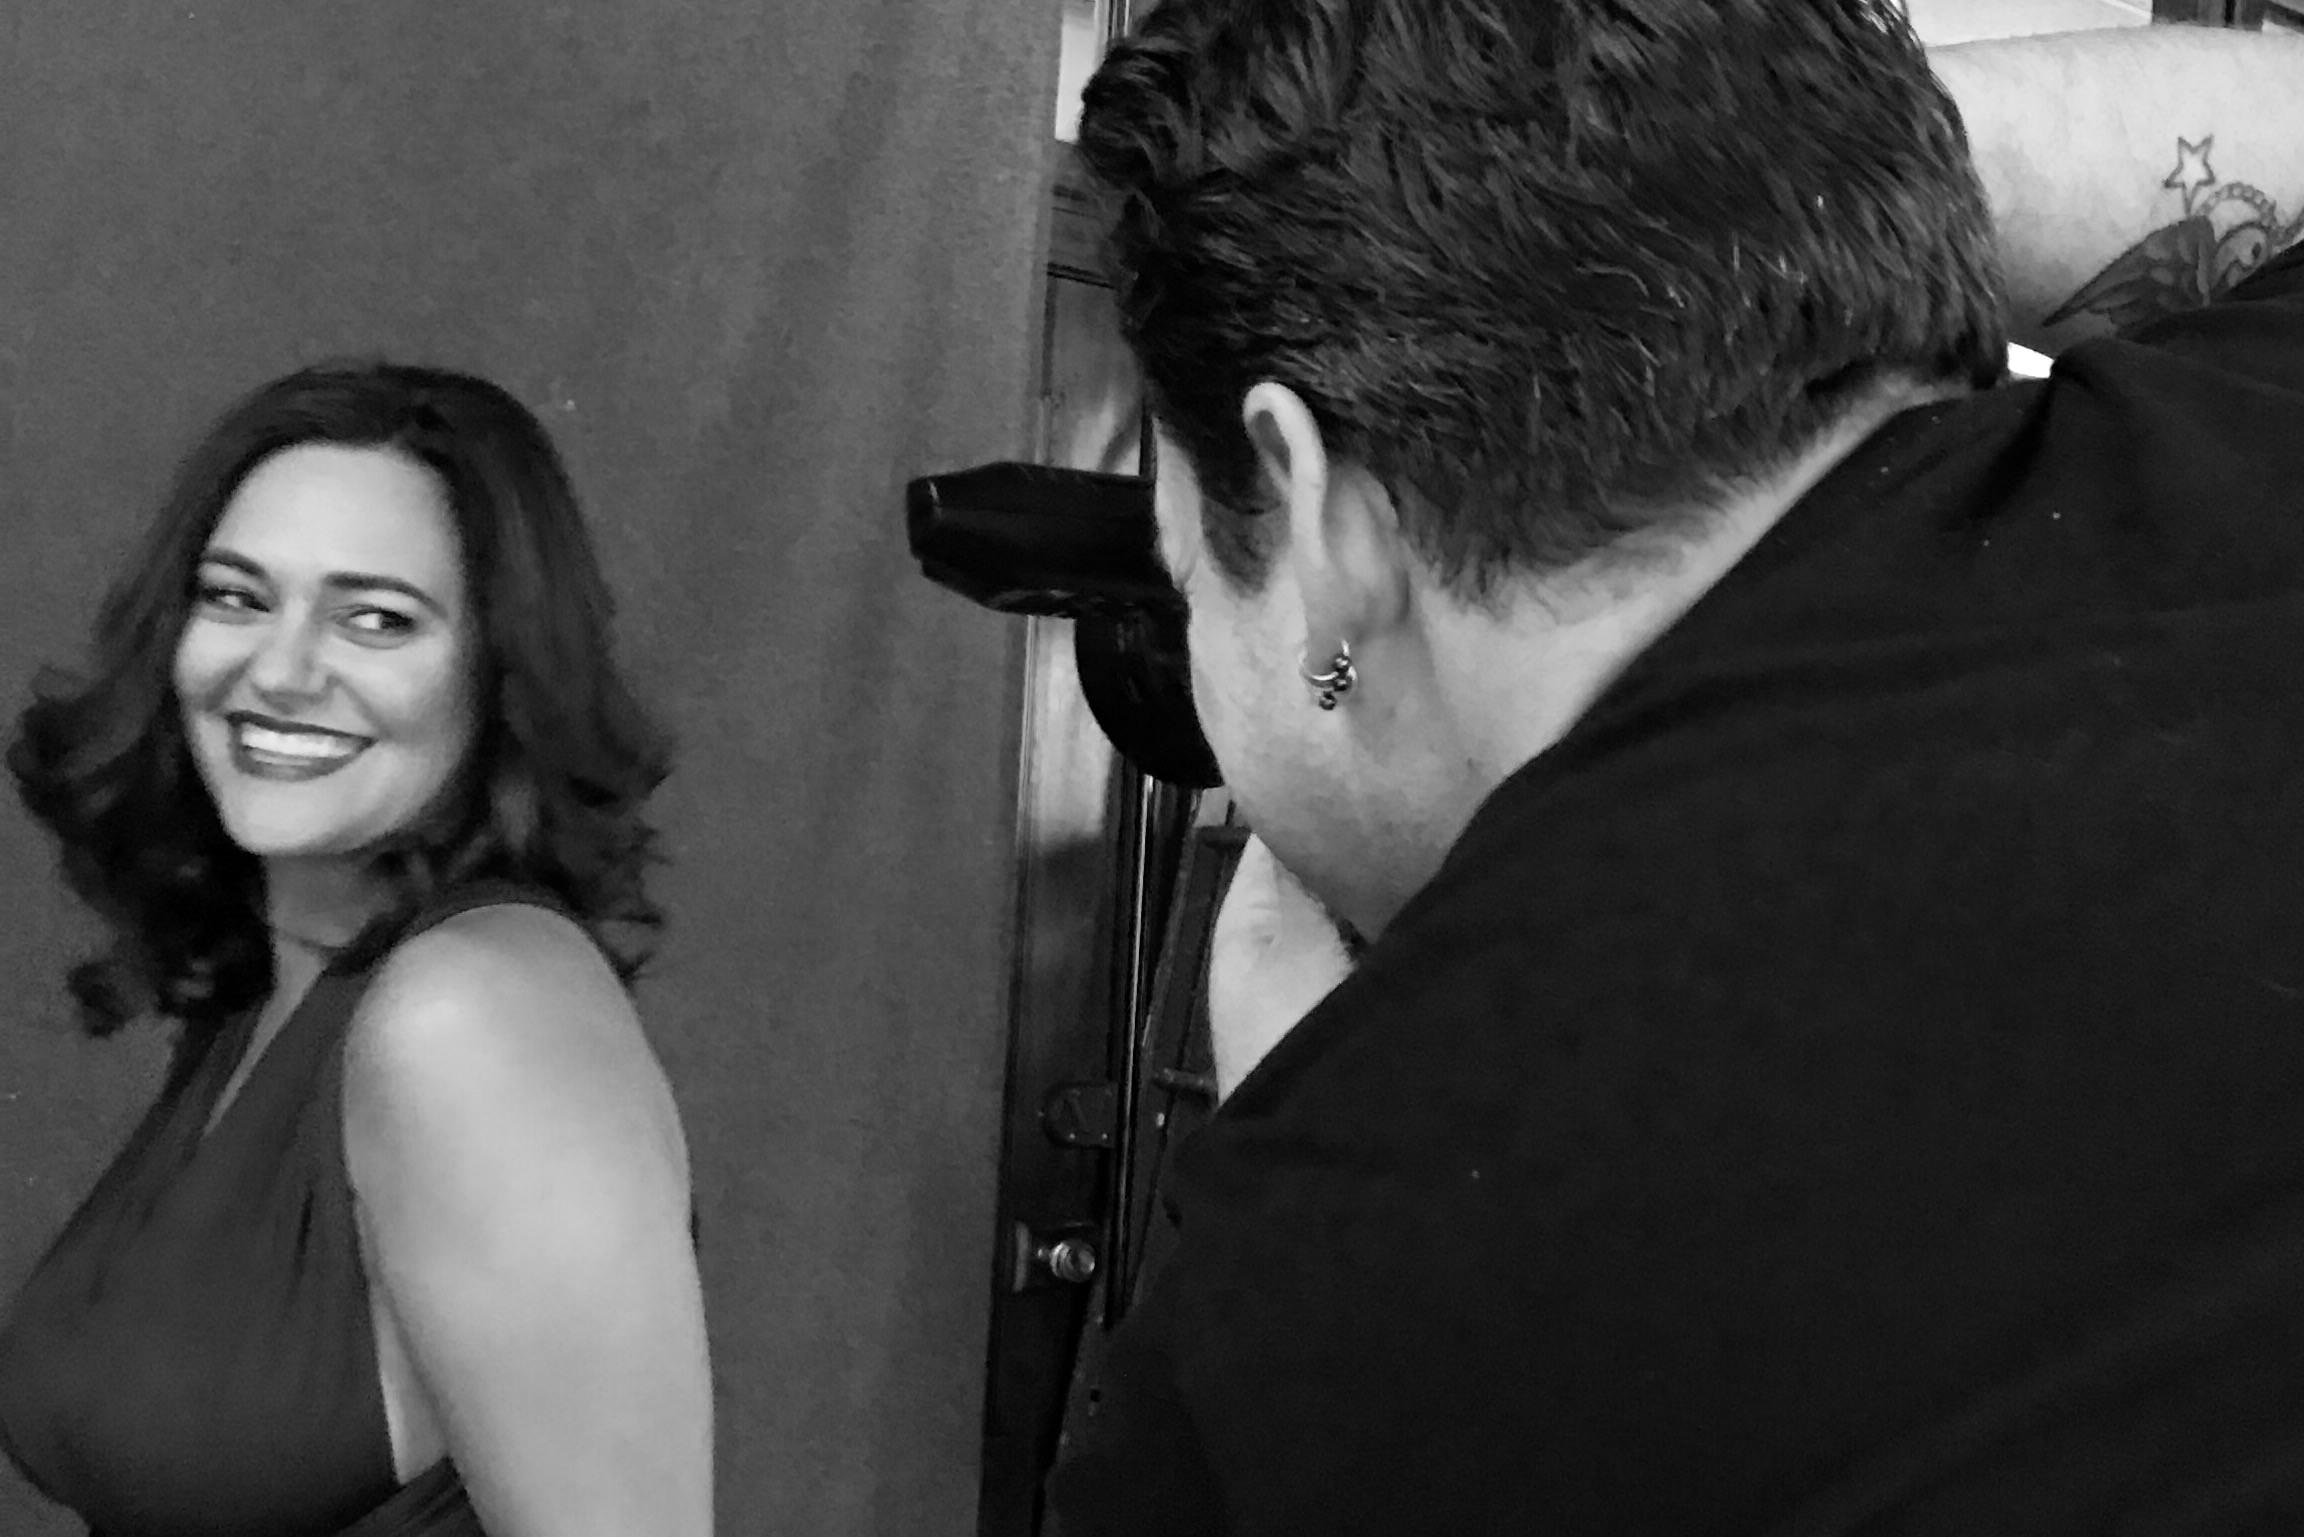 Behind The Scenes o fJEssica Piasta's Portrait Session With Louisville Portrait Photographer Ben Marcum